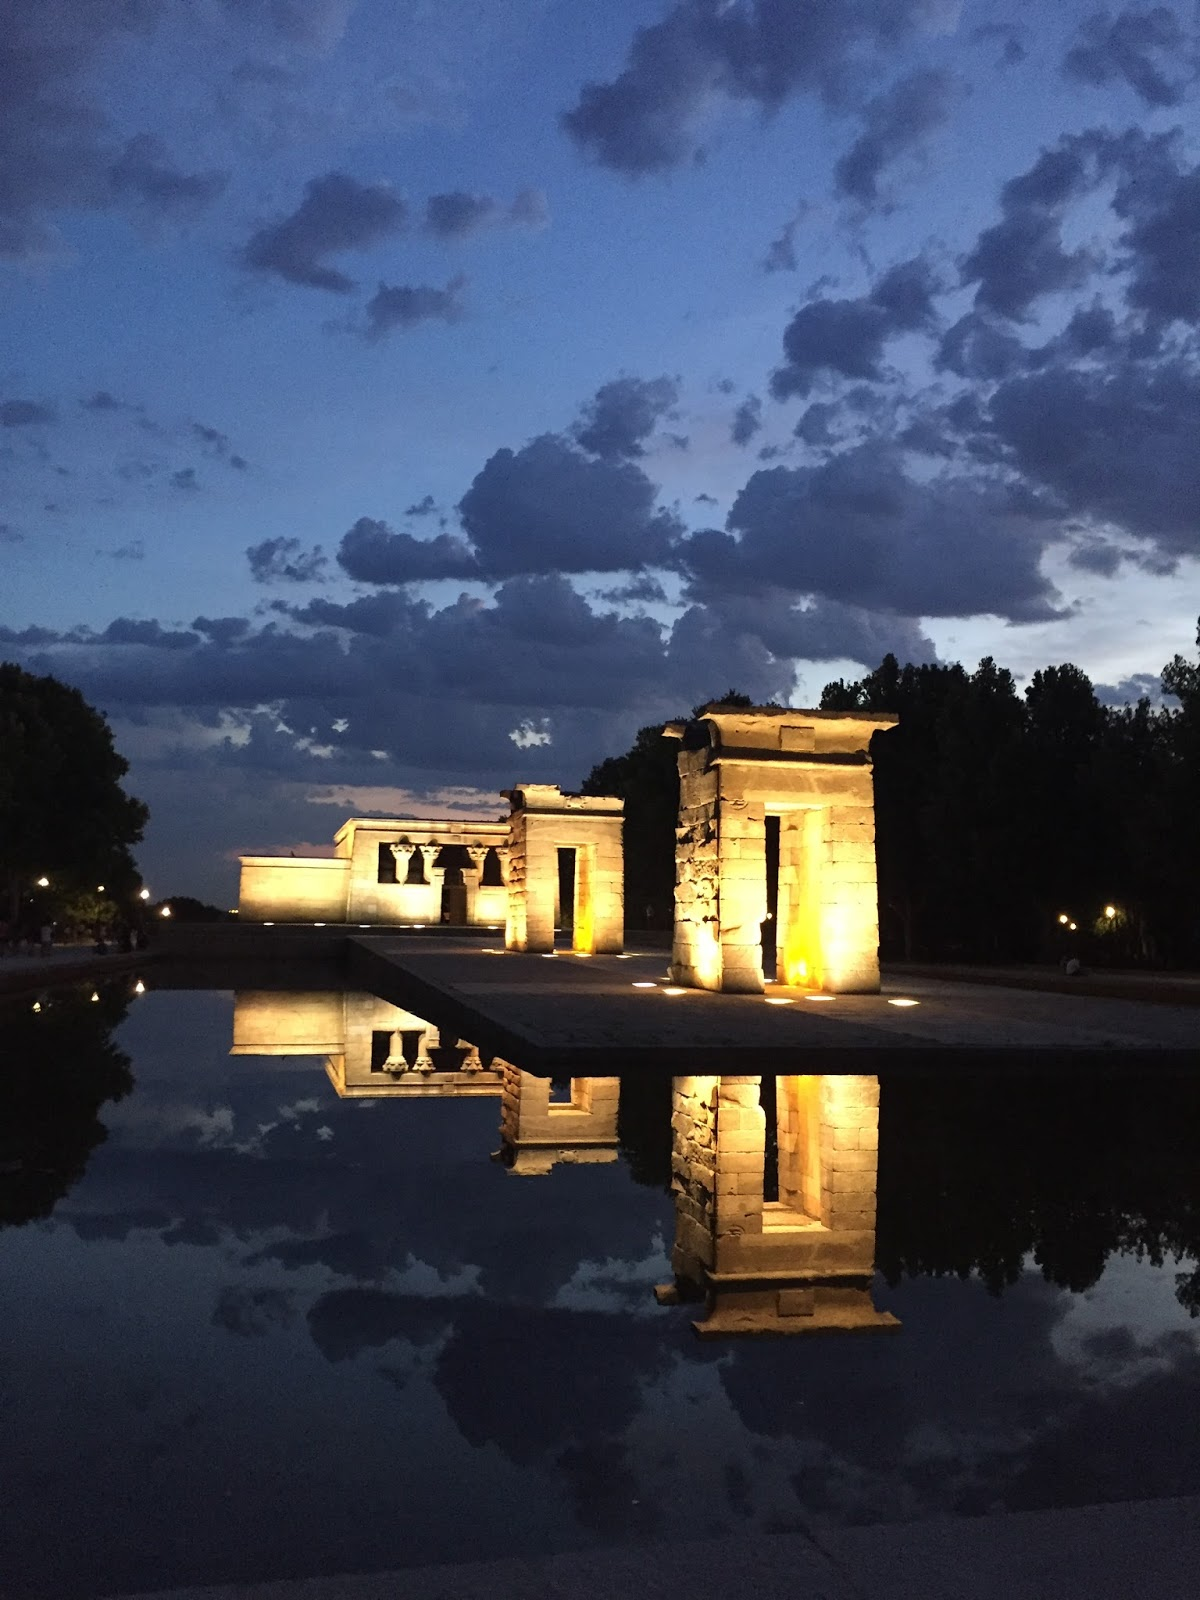 Madrid Day 3 and 4: Roselada and the Temple of Debod